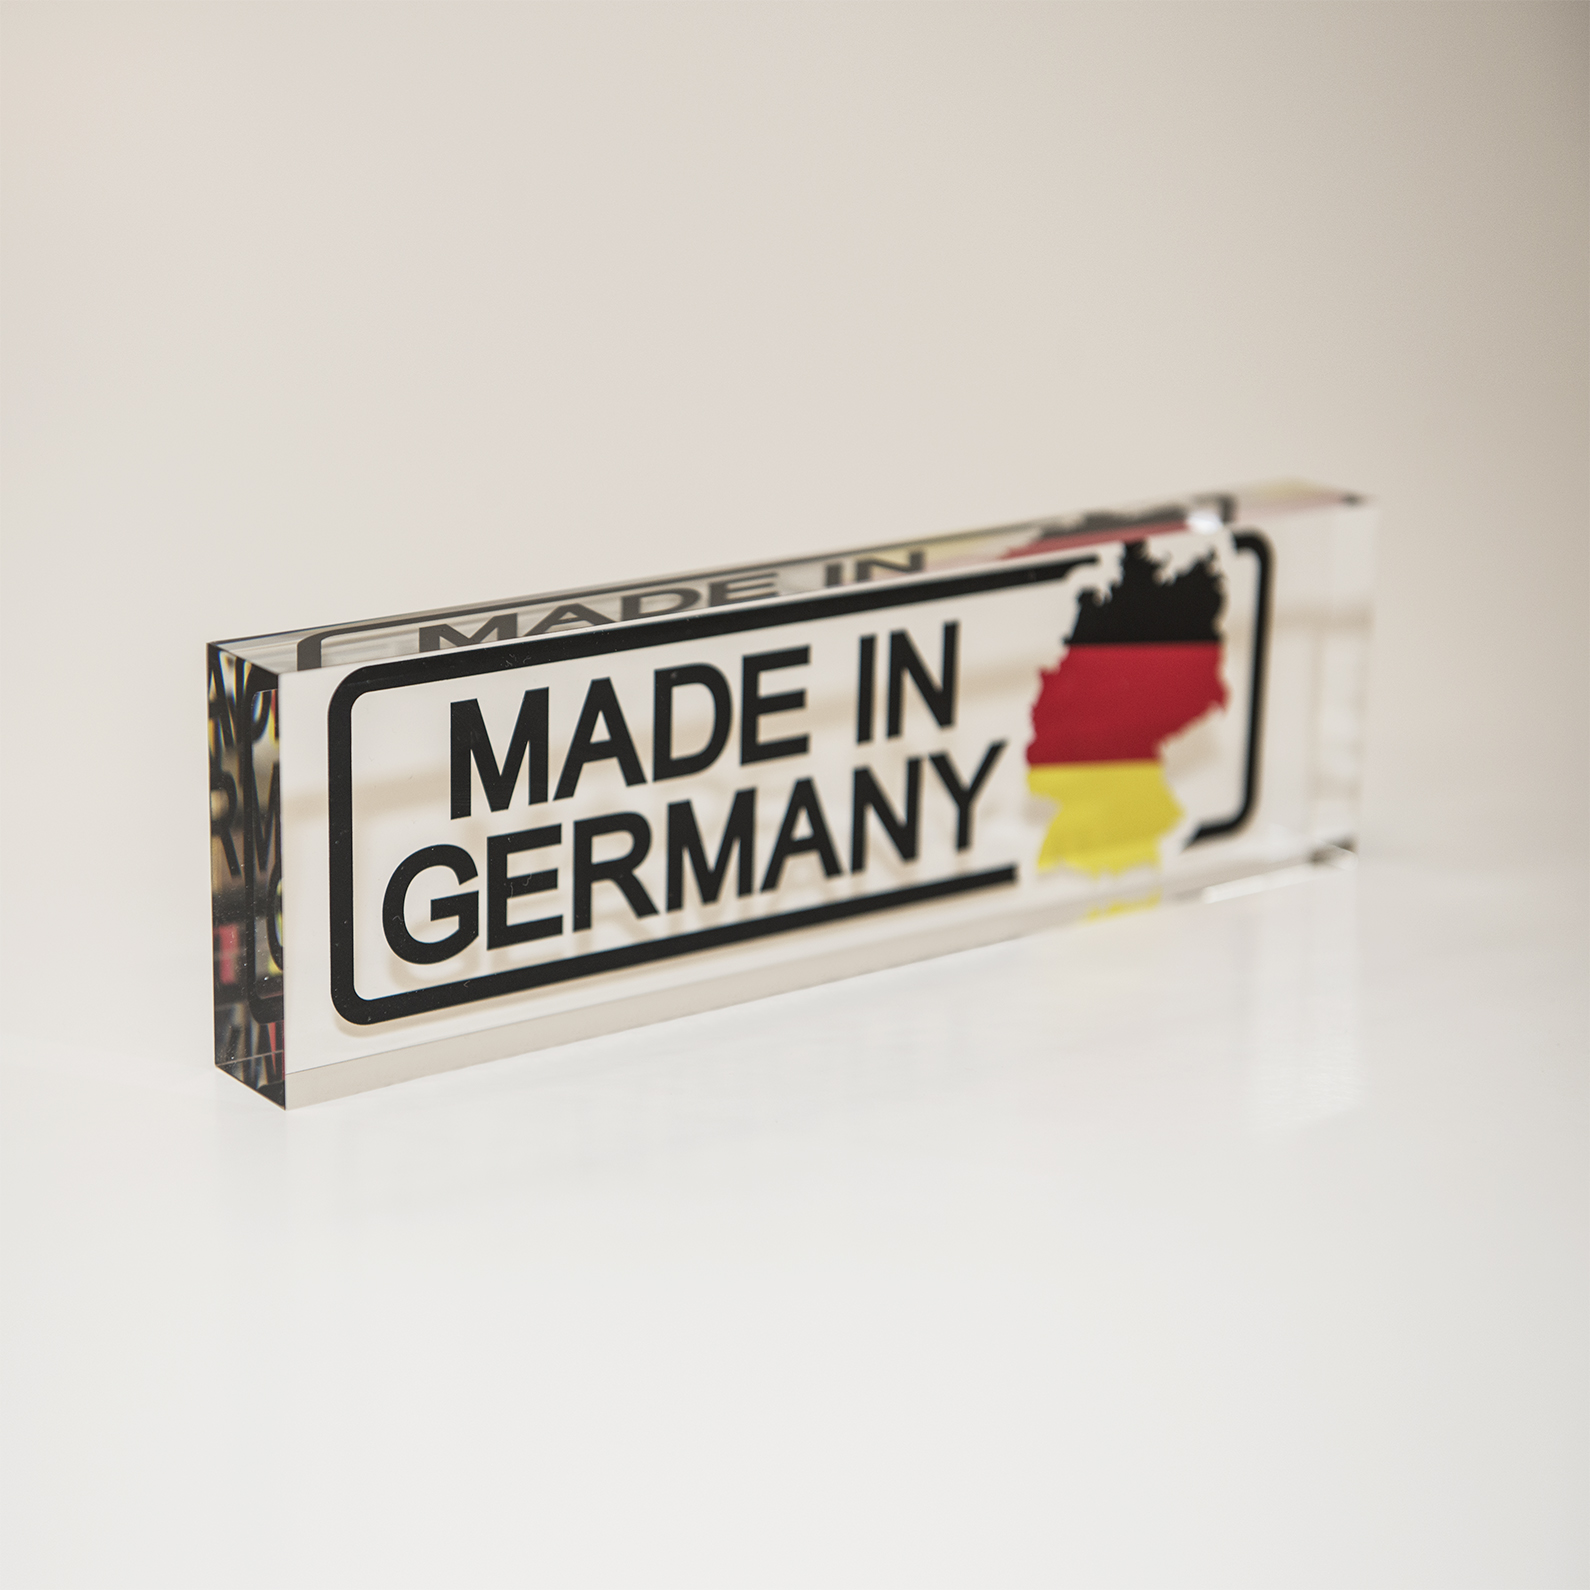 Marken Acrylglas der Marke PLEXIGLAS® - Made in Germany.